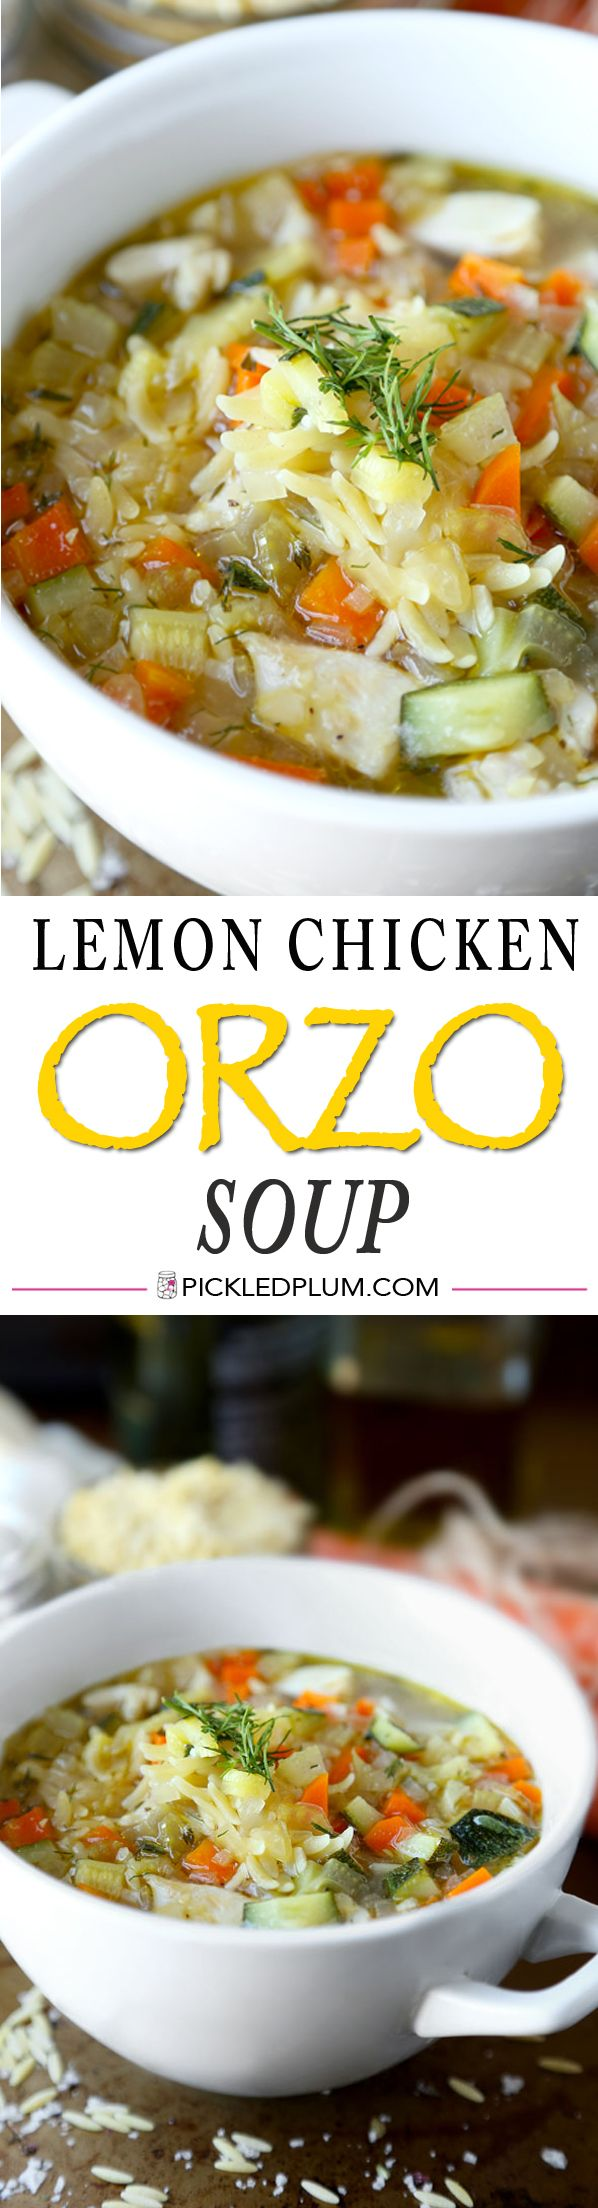 ... Chicken Orzo Soup on Pinterest | Chicken Orzo, Lemon Chicken Orzo Soup